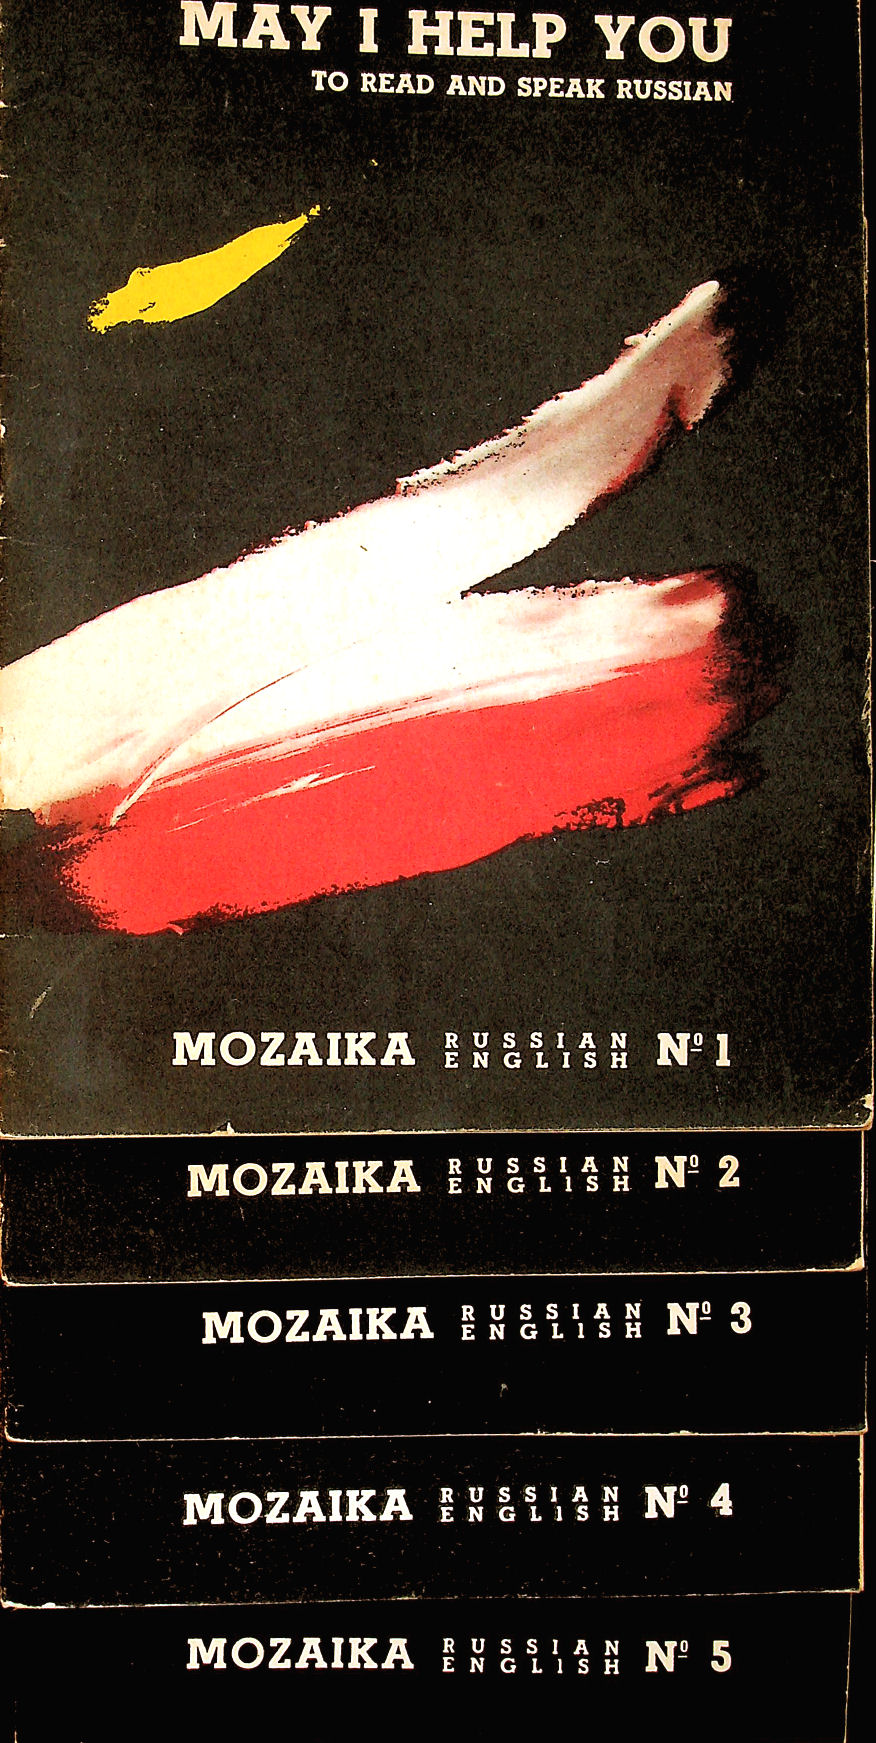 Image for May I Help You to Read and Speak Russian. Mozaika, Nos 1, 2, 3, 4, 5